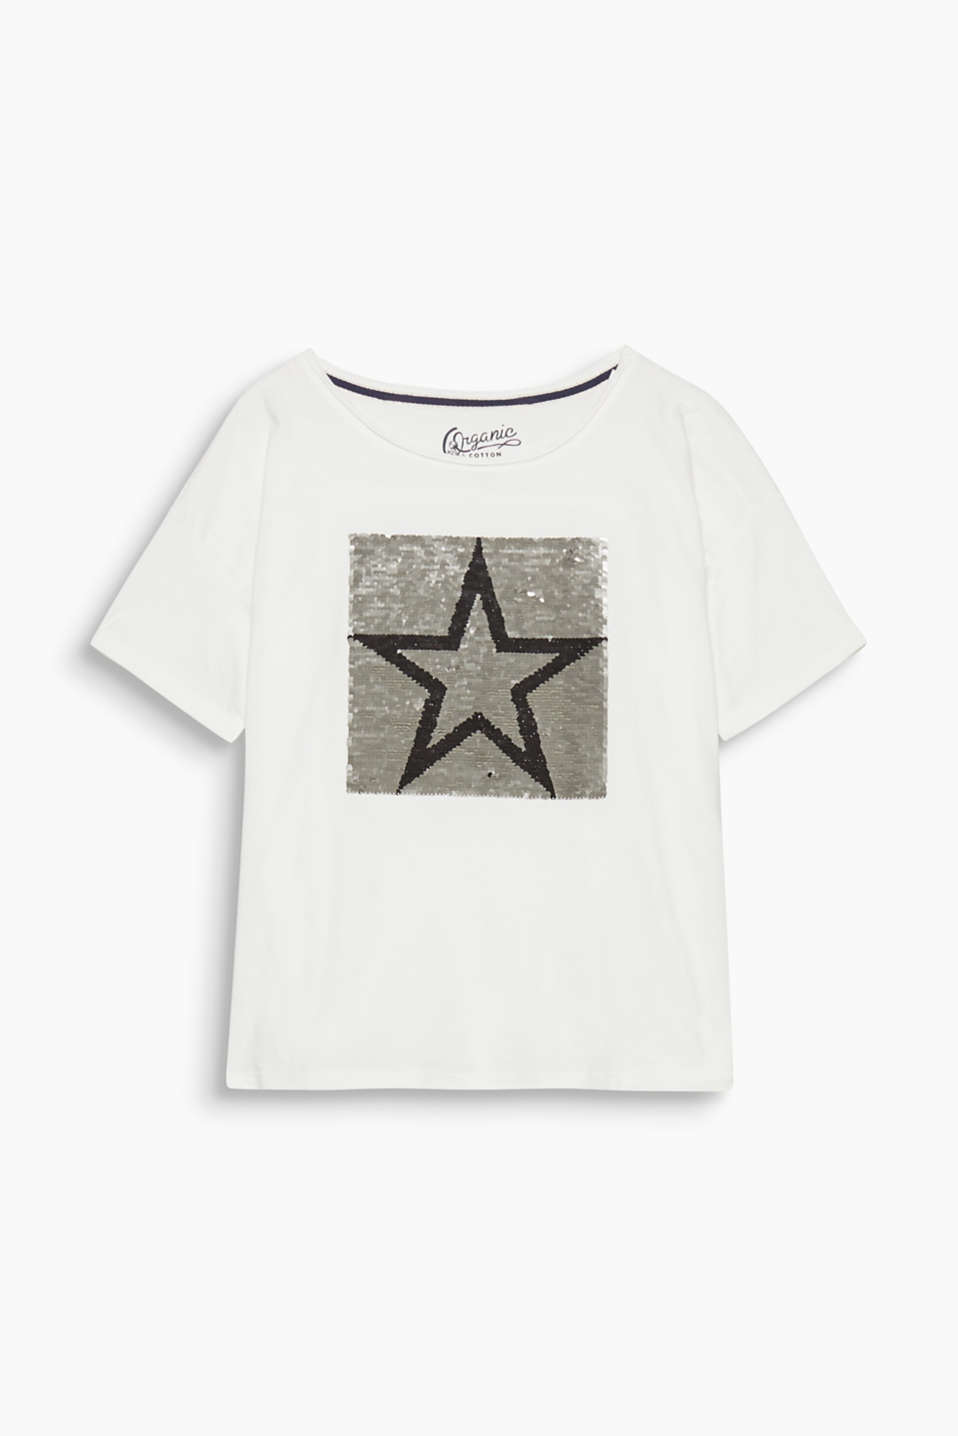 This ultra-soft t-shirt shimmers with its sequin artwork which changes its colour when the sequins are flipped over.